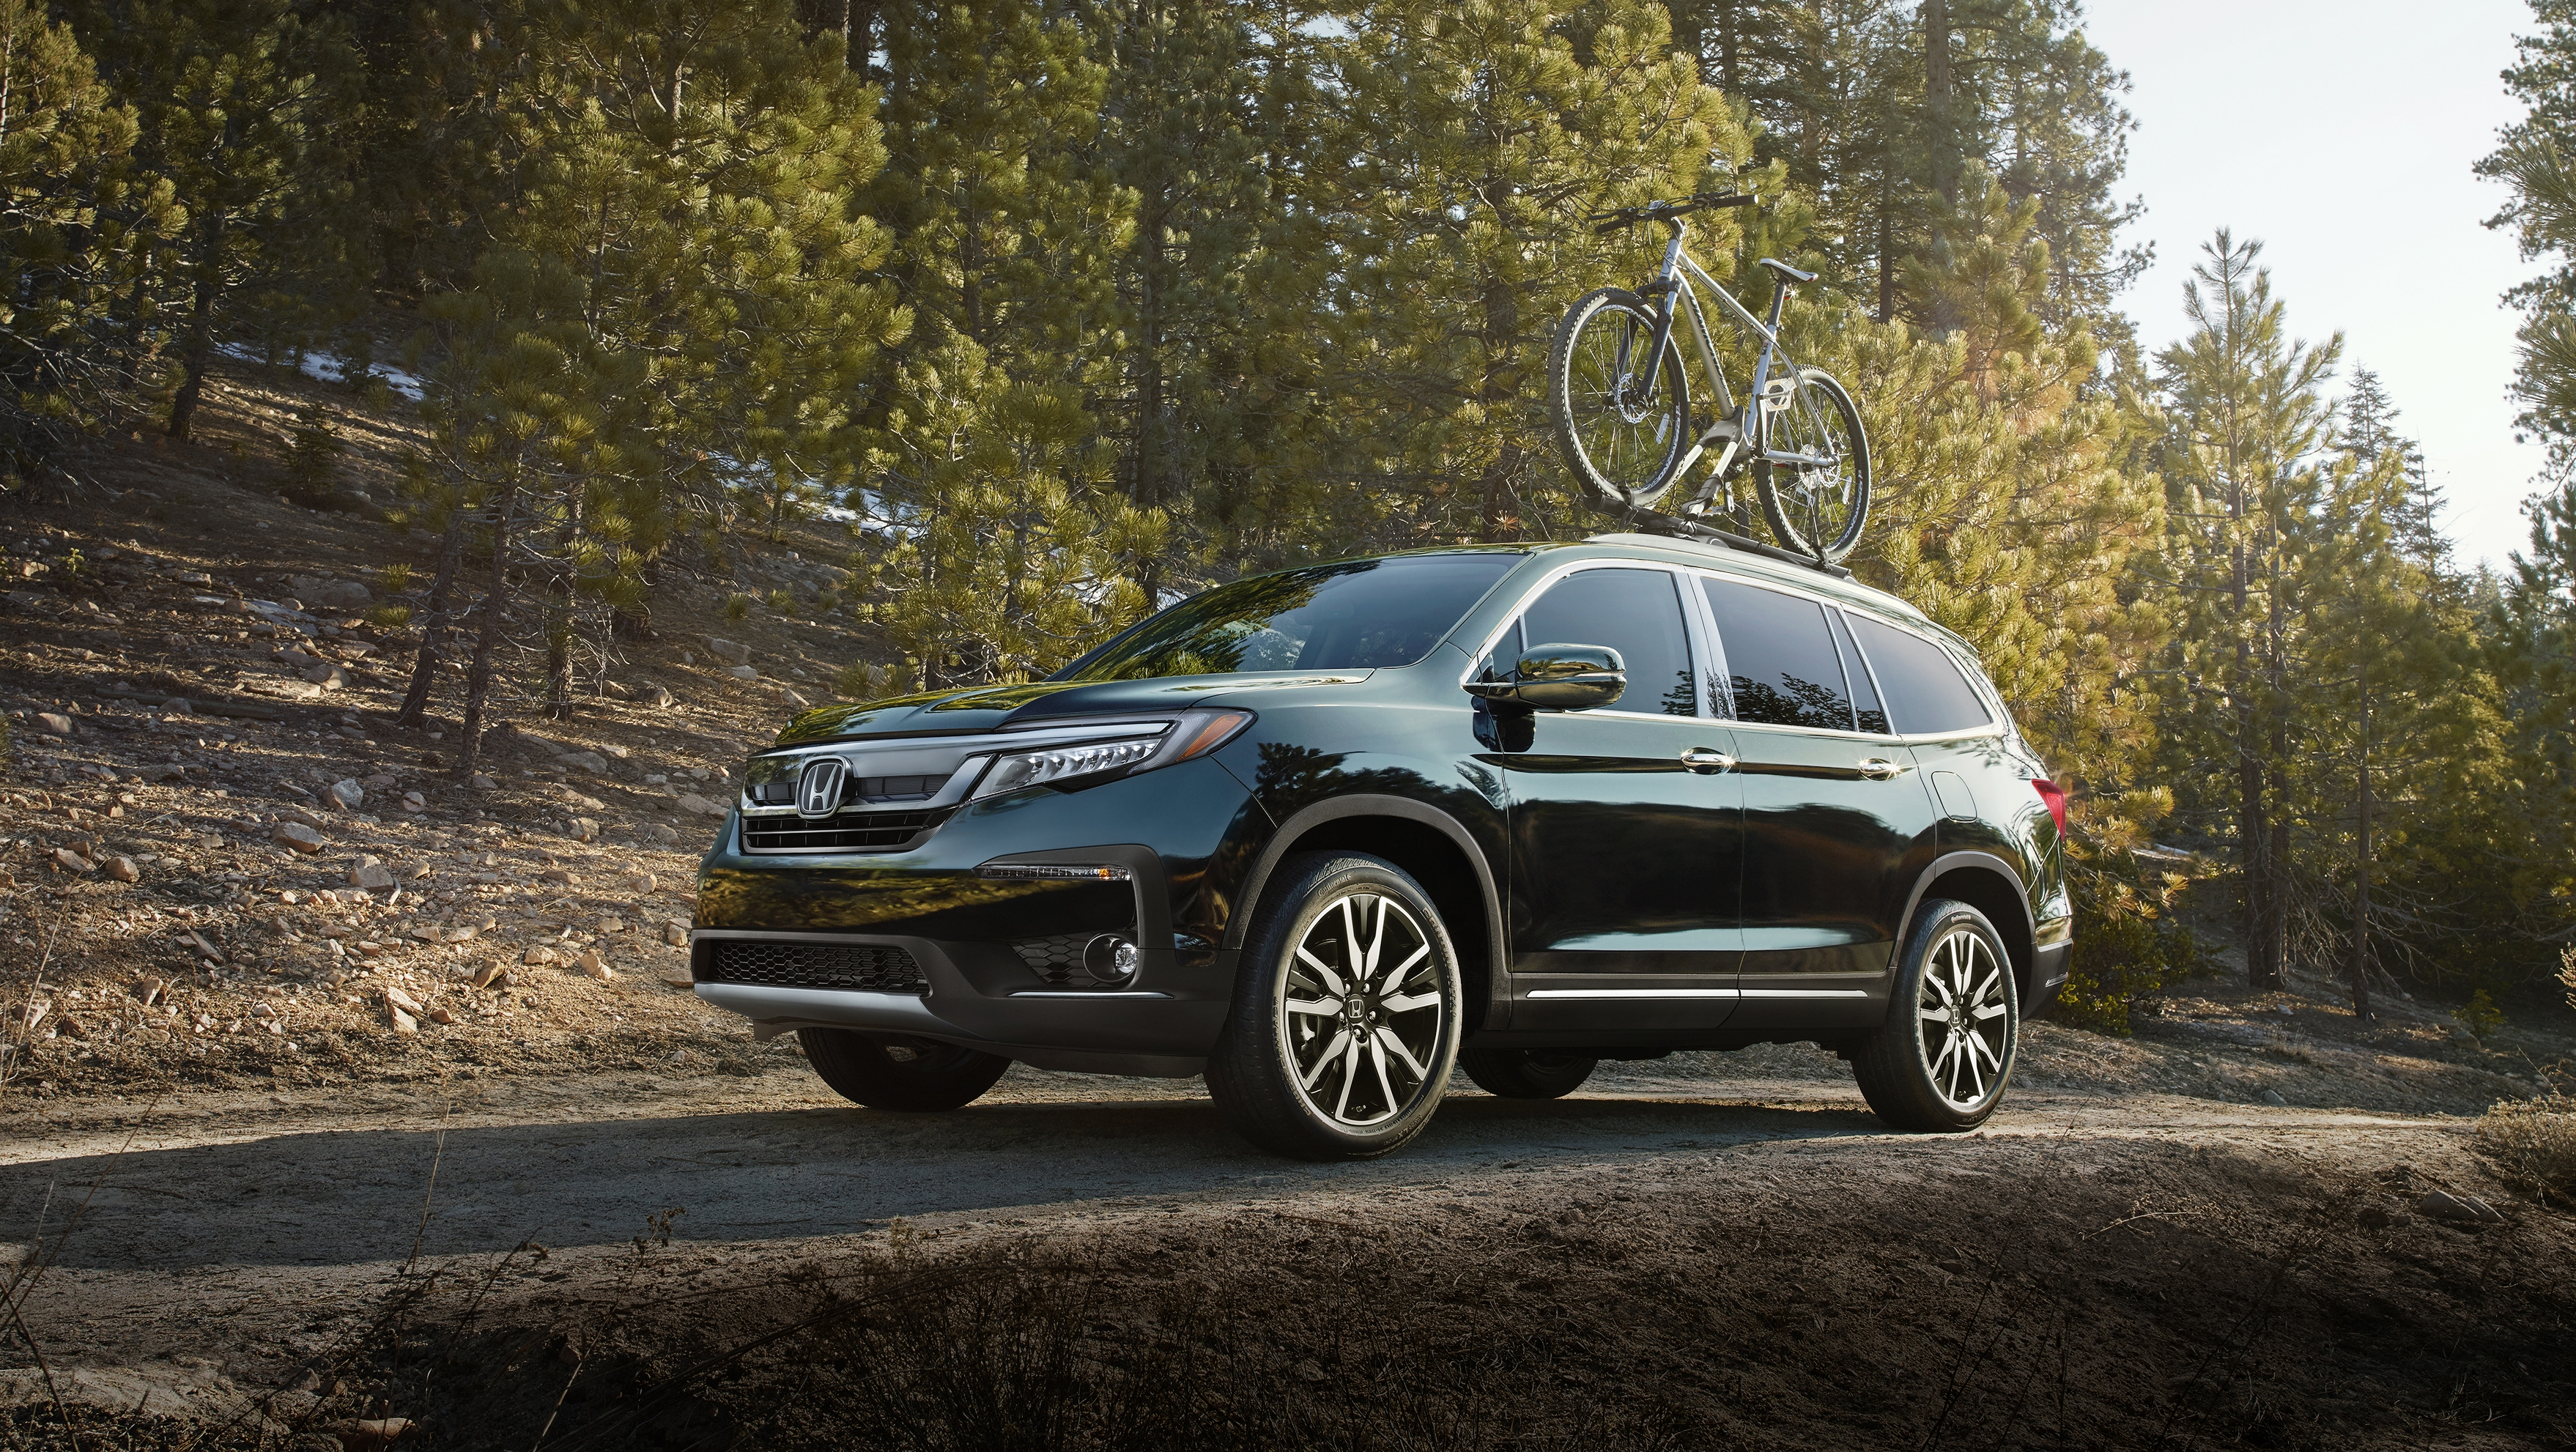 As The Only 8 Passenger SUV In Segment Honda Pilot Discovered A Dedicated Base Of Customers On US Market An Effort To Advance Their